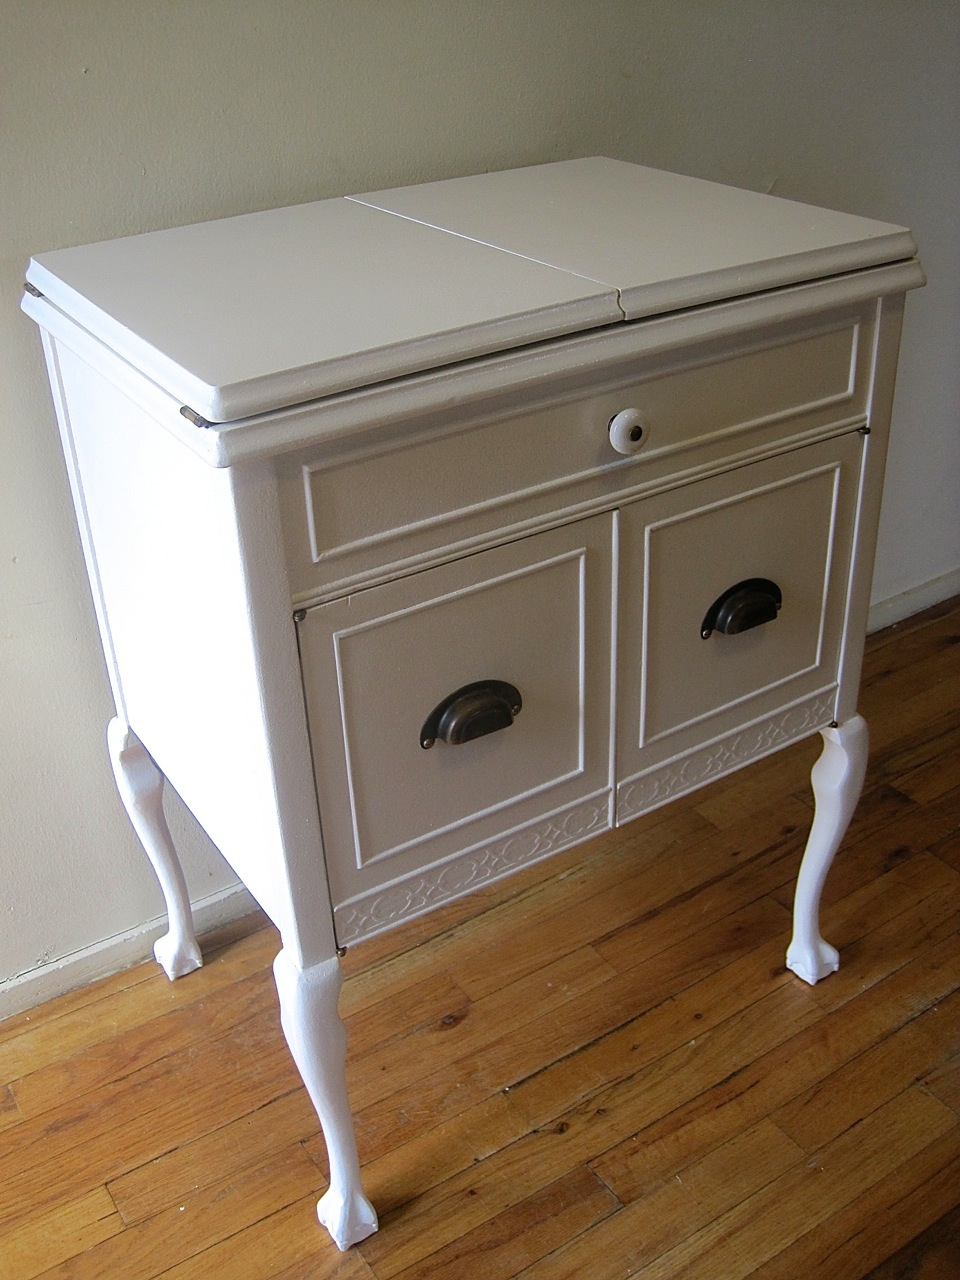 The Project Lady - Sewing Machine Cabinet Makeover